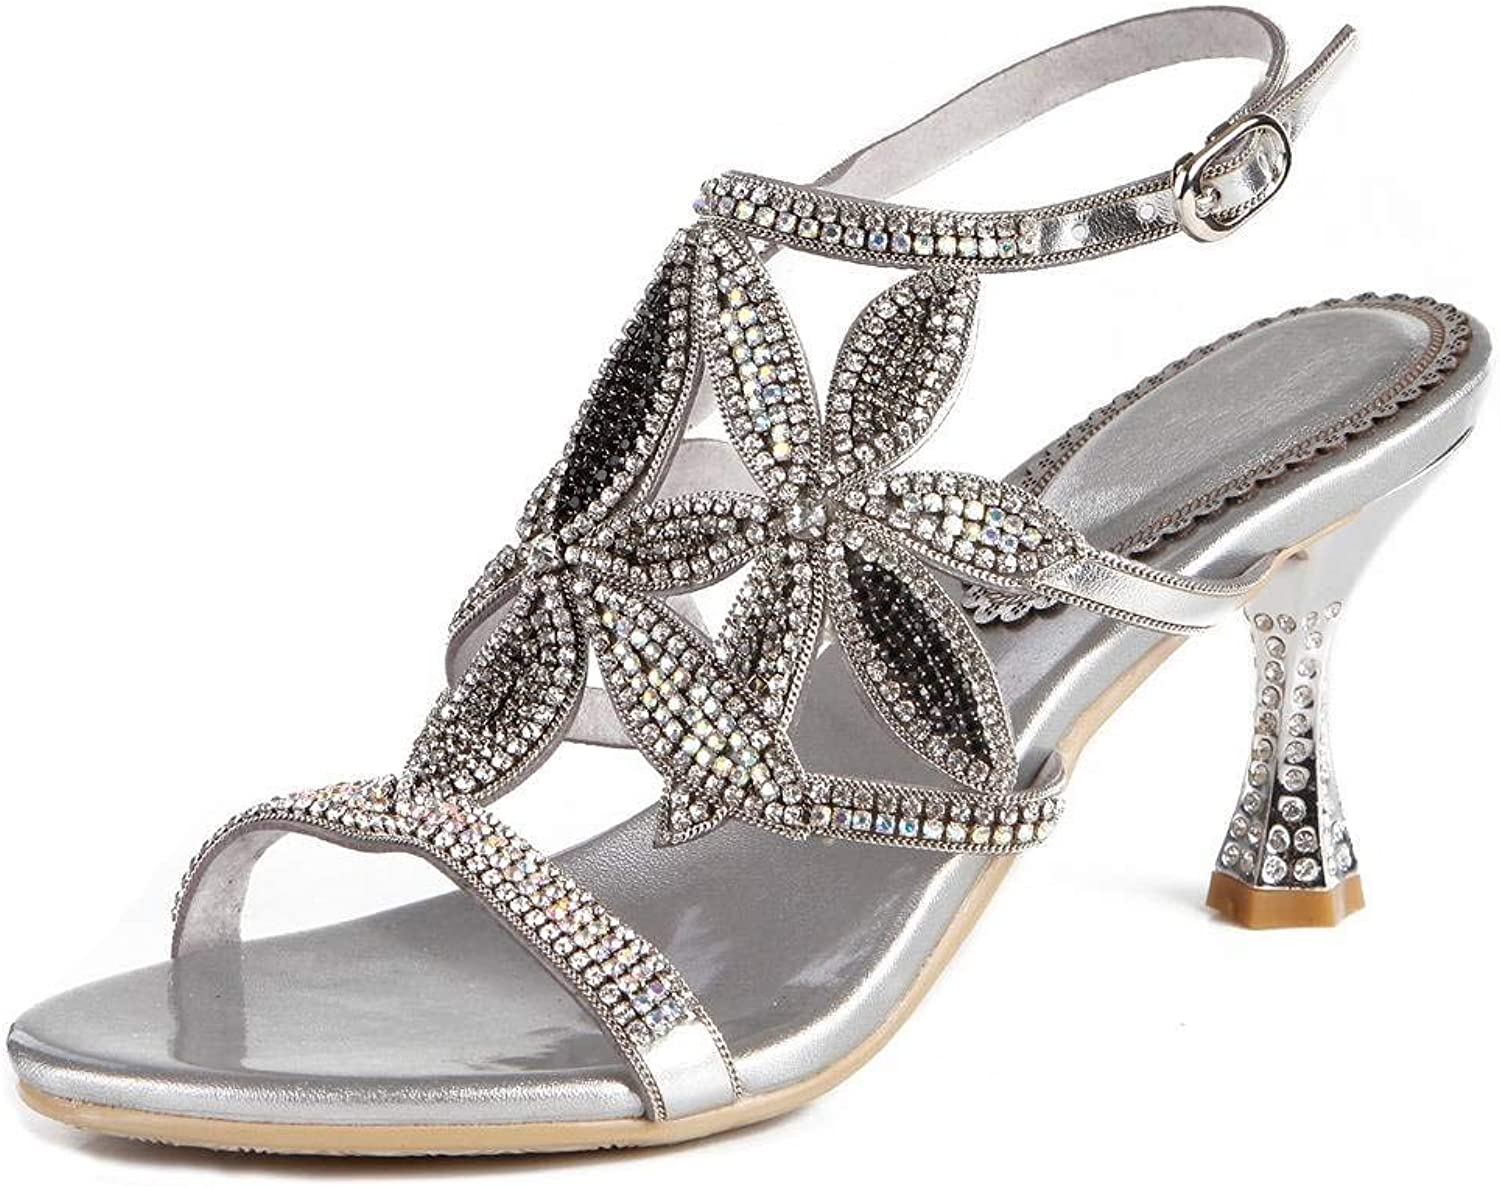 LizForm Women Cutout Studded Sandal Strappy Bridal Evening Wedding Heeled Sandals